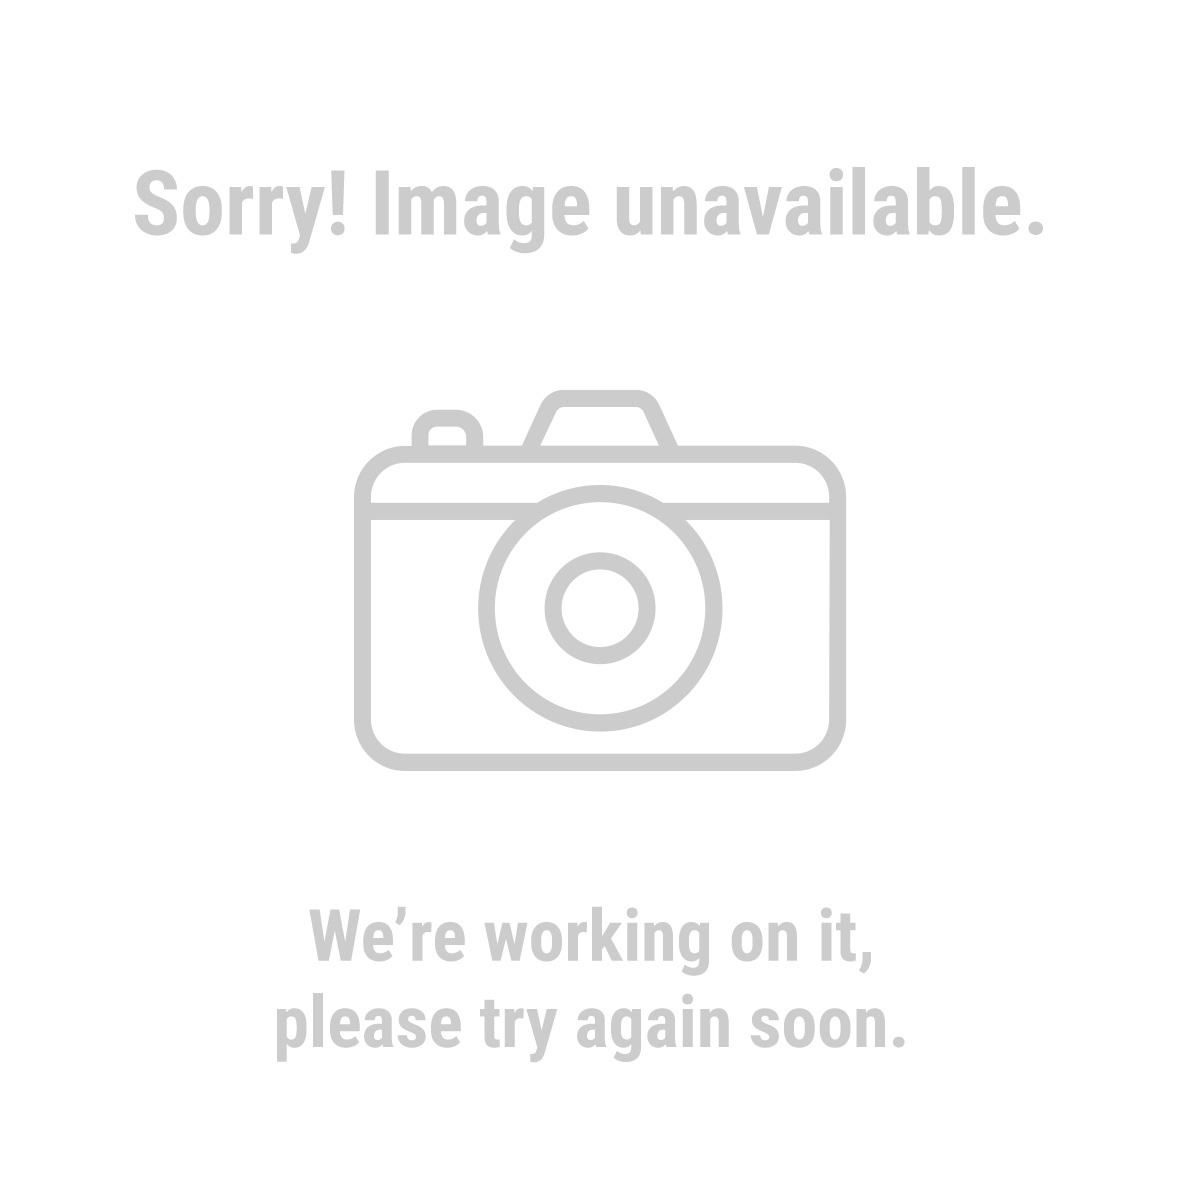 HFT® 69122 7 ft. 11 in. x 9 ft. 11 in. Blue/Silver Reversible All Purpose/Weather Resistant Tarp